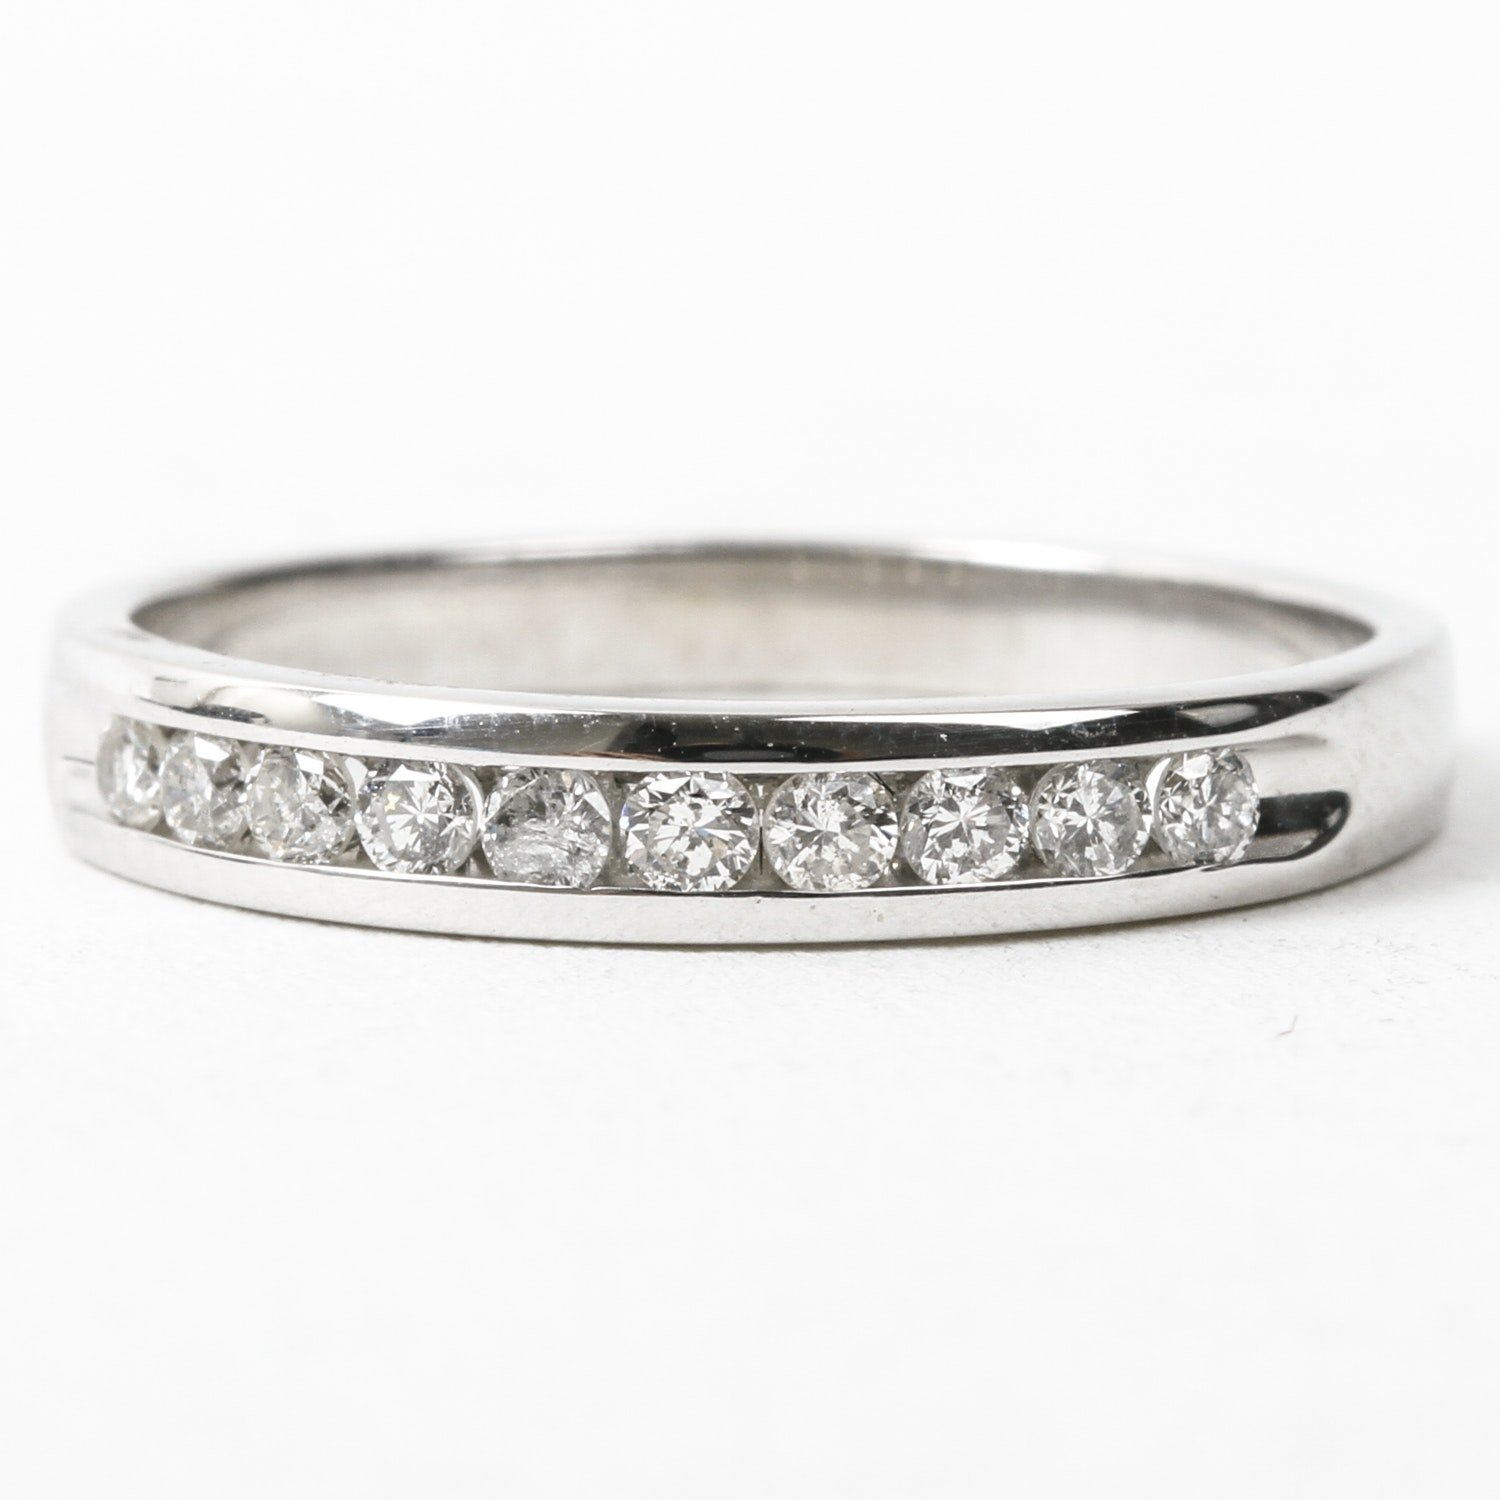 14K White Gold and Channel Set Diamond Band